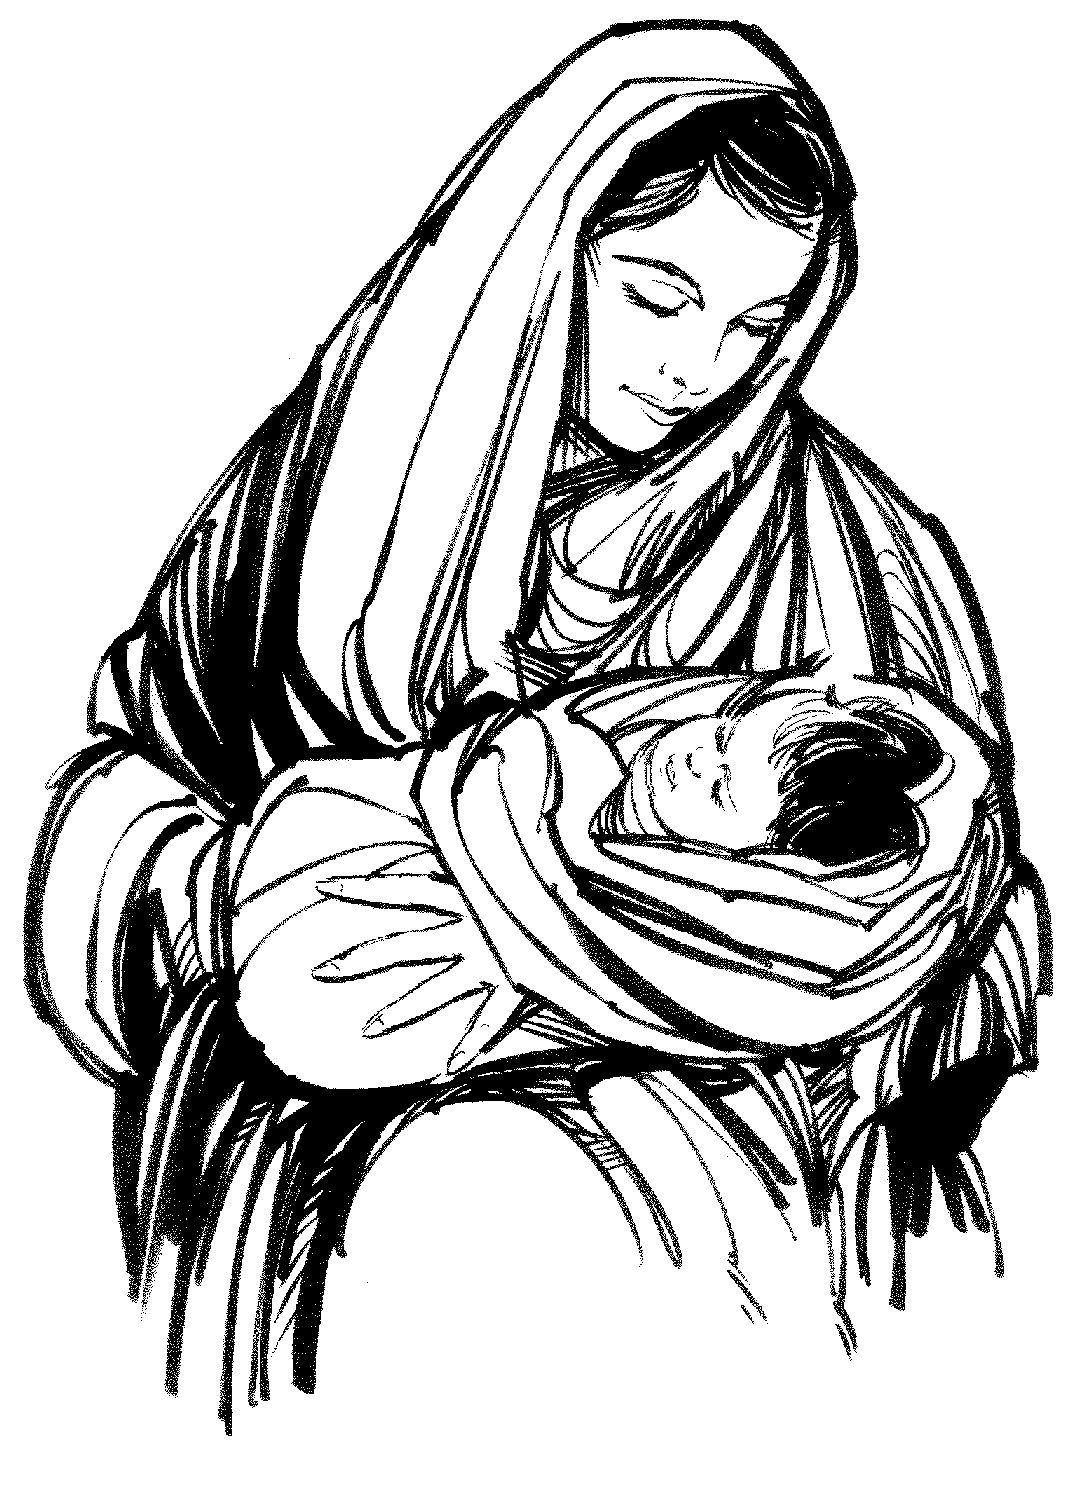 medium resolution of 1073x1500 virgin mary carrying baby jesus jesus clipart explore pictures